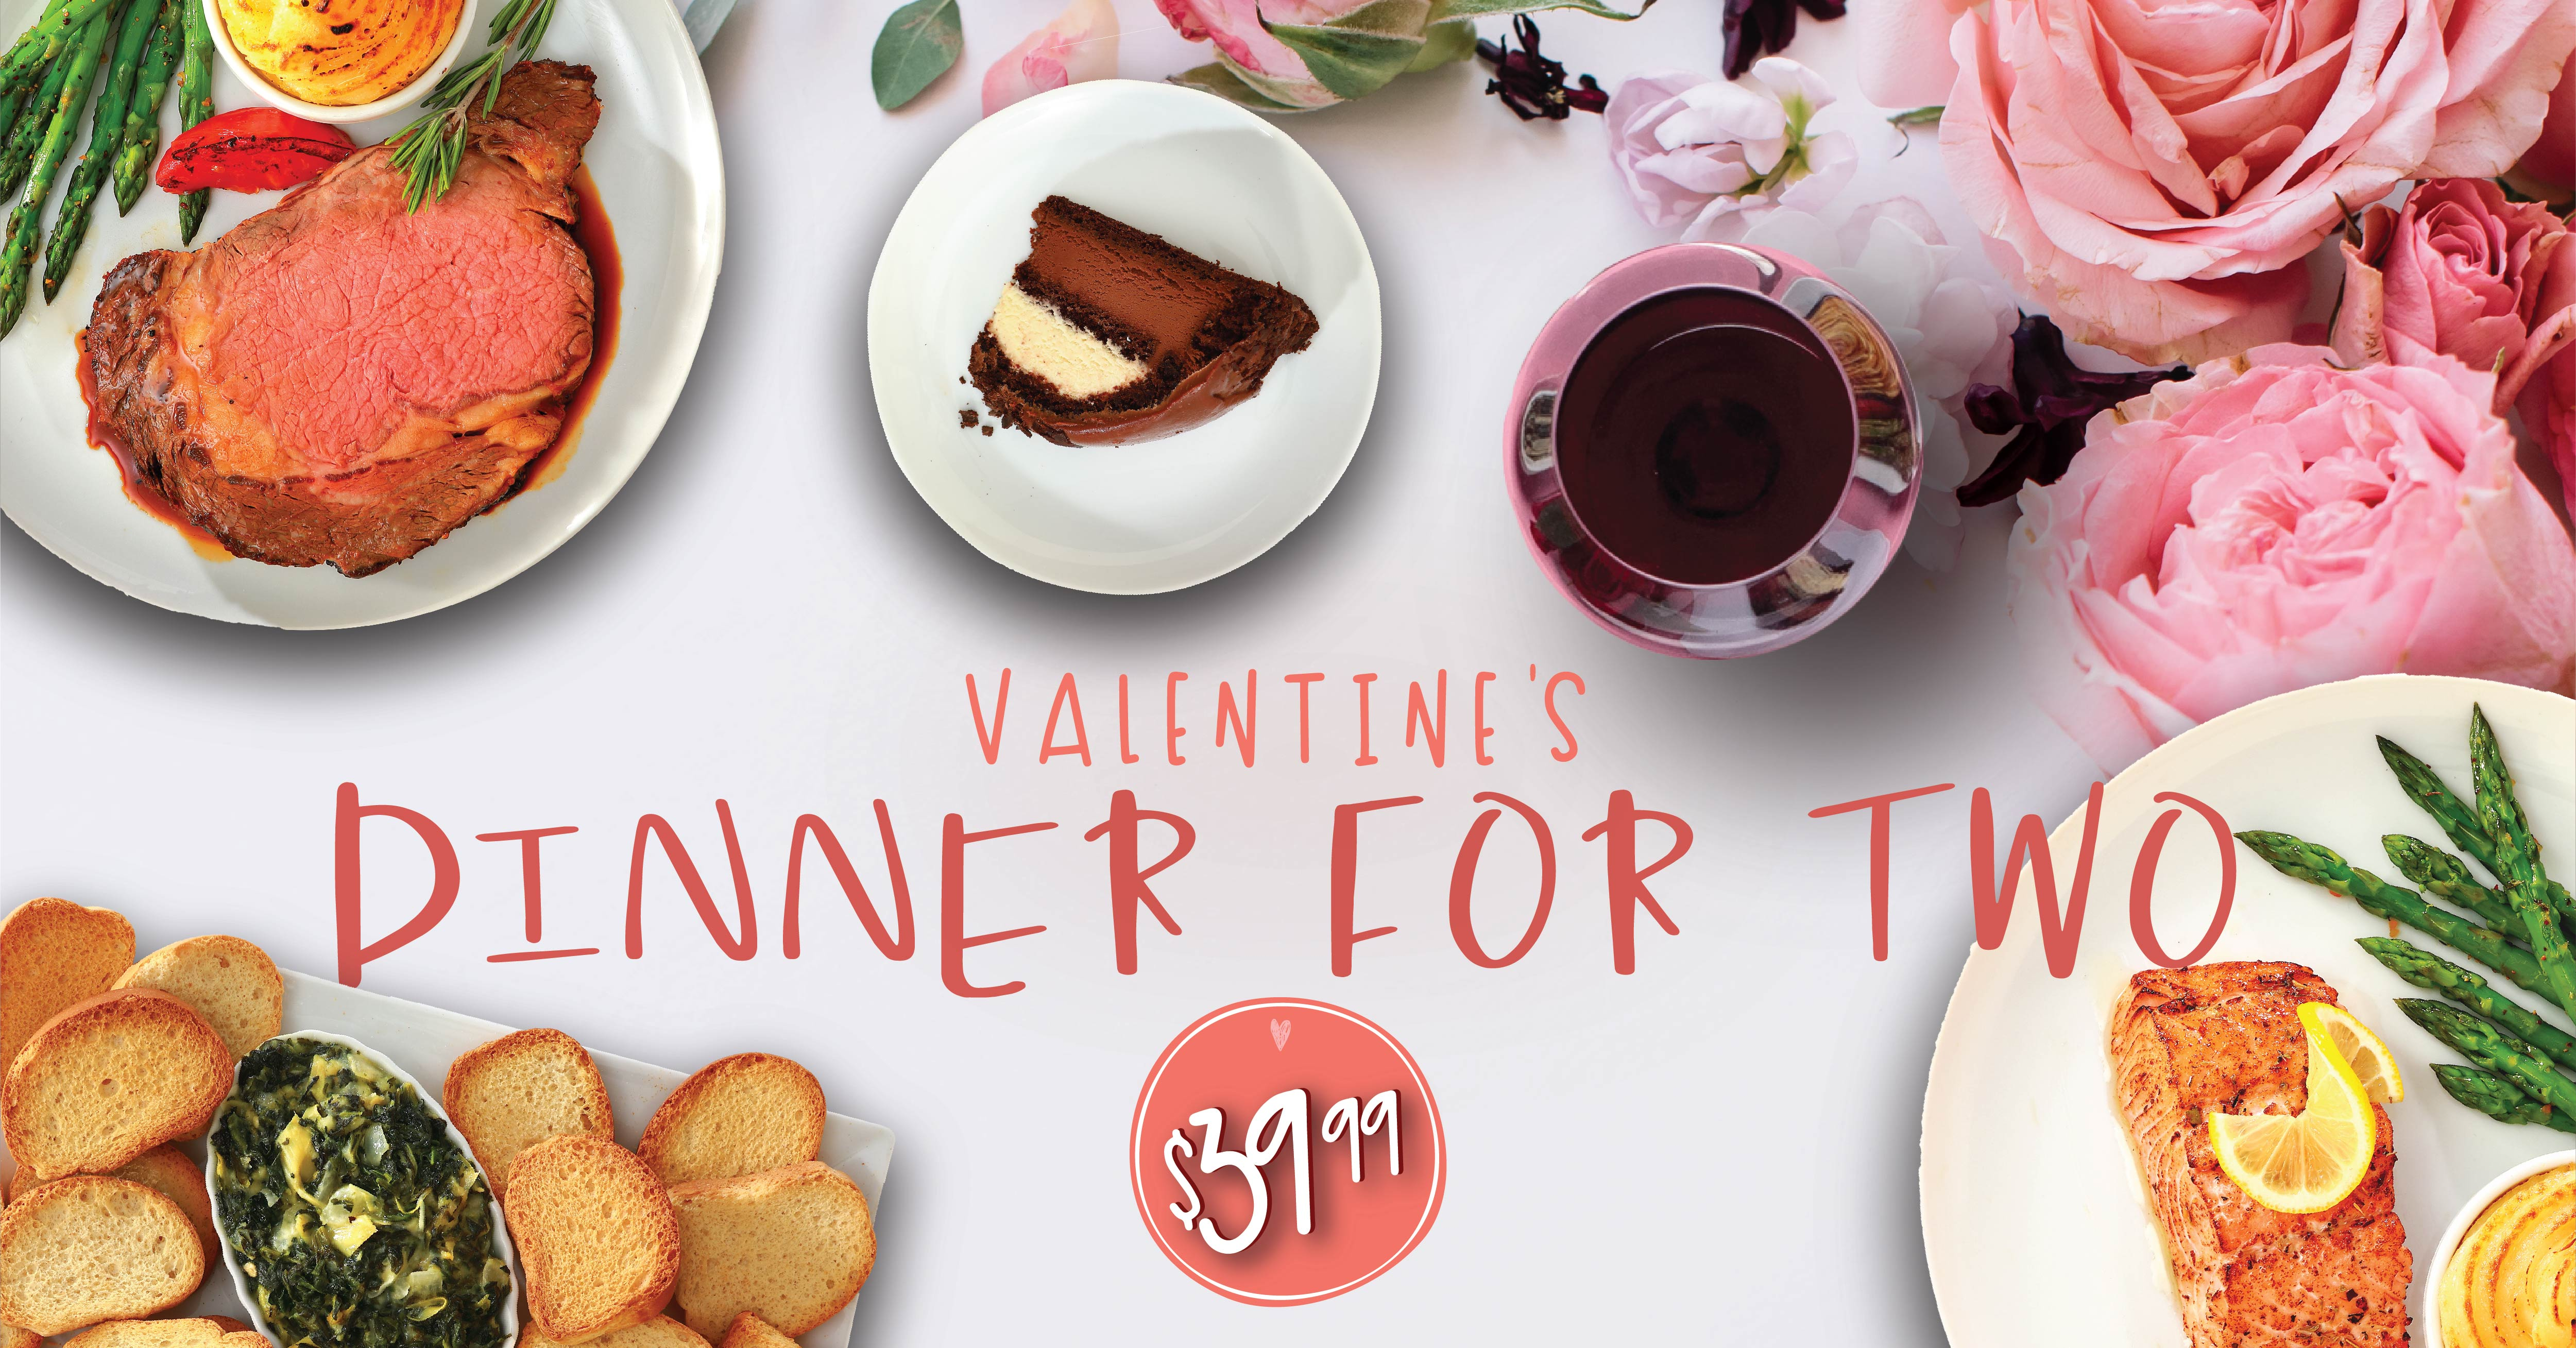 21-Marketing-2863 Valentines Day 2021_Digital Deliverables_Web Assets_Dinner for Two_FB Ad_1200x628